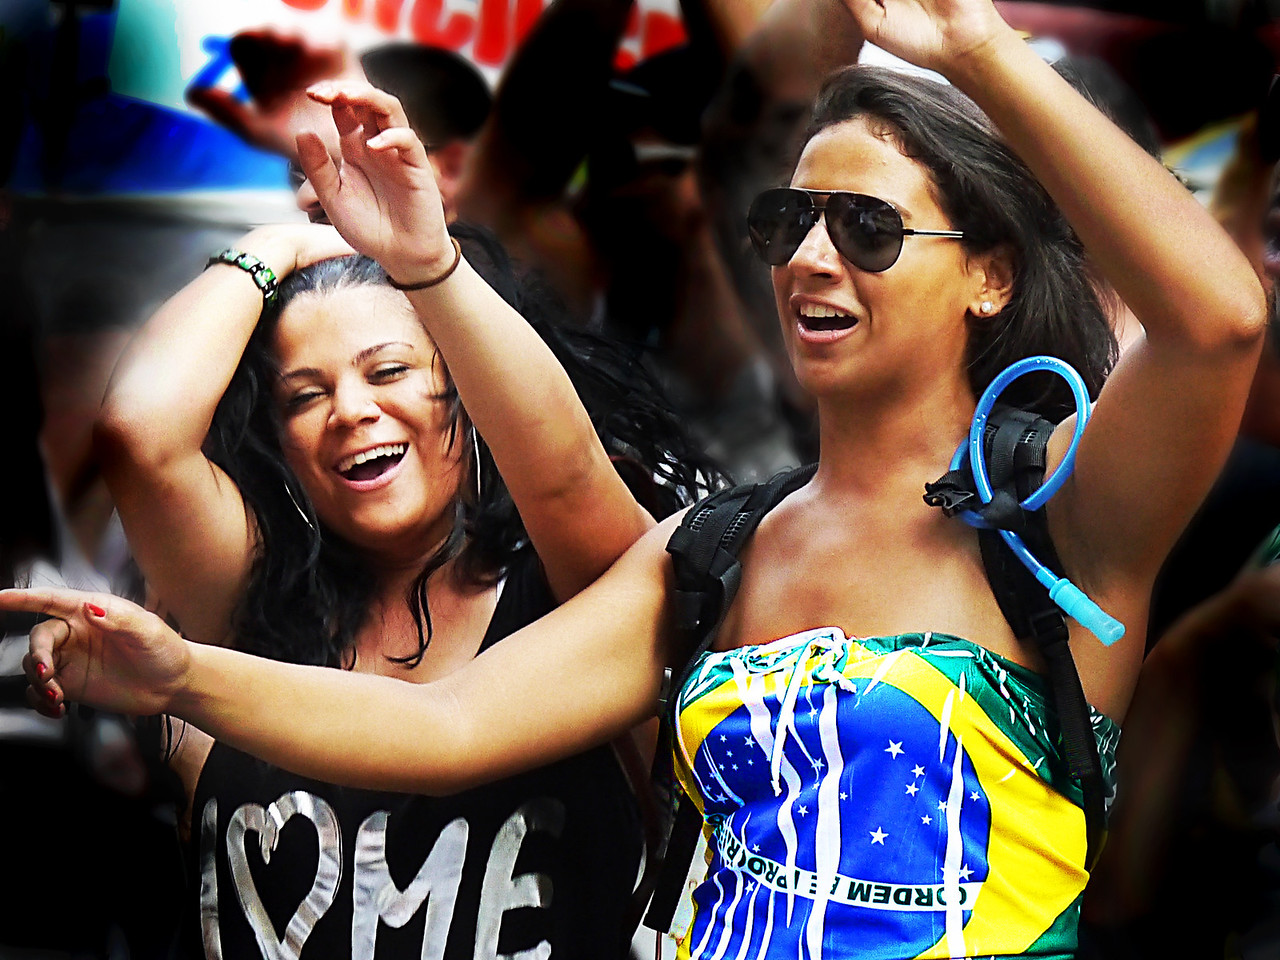 Brazil Celebration, New York City